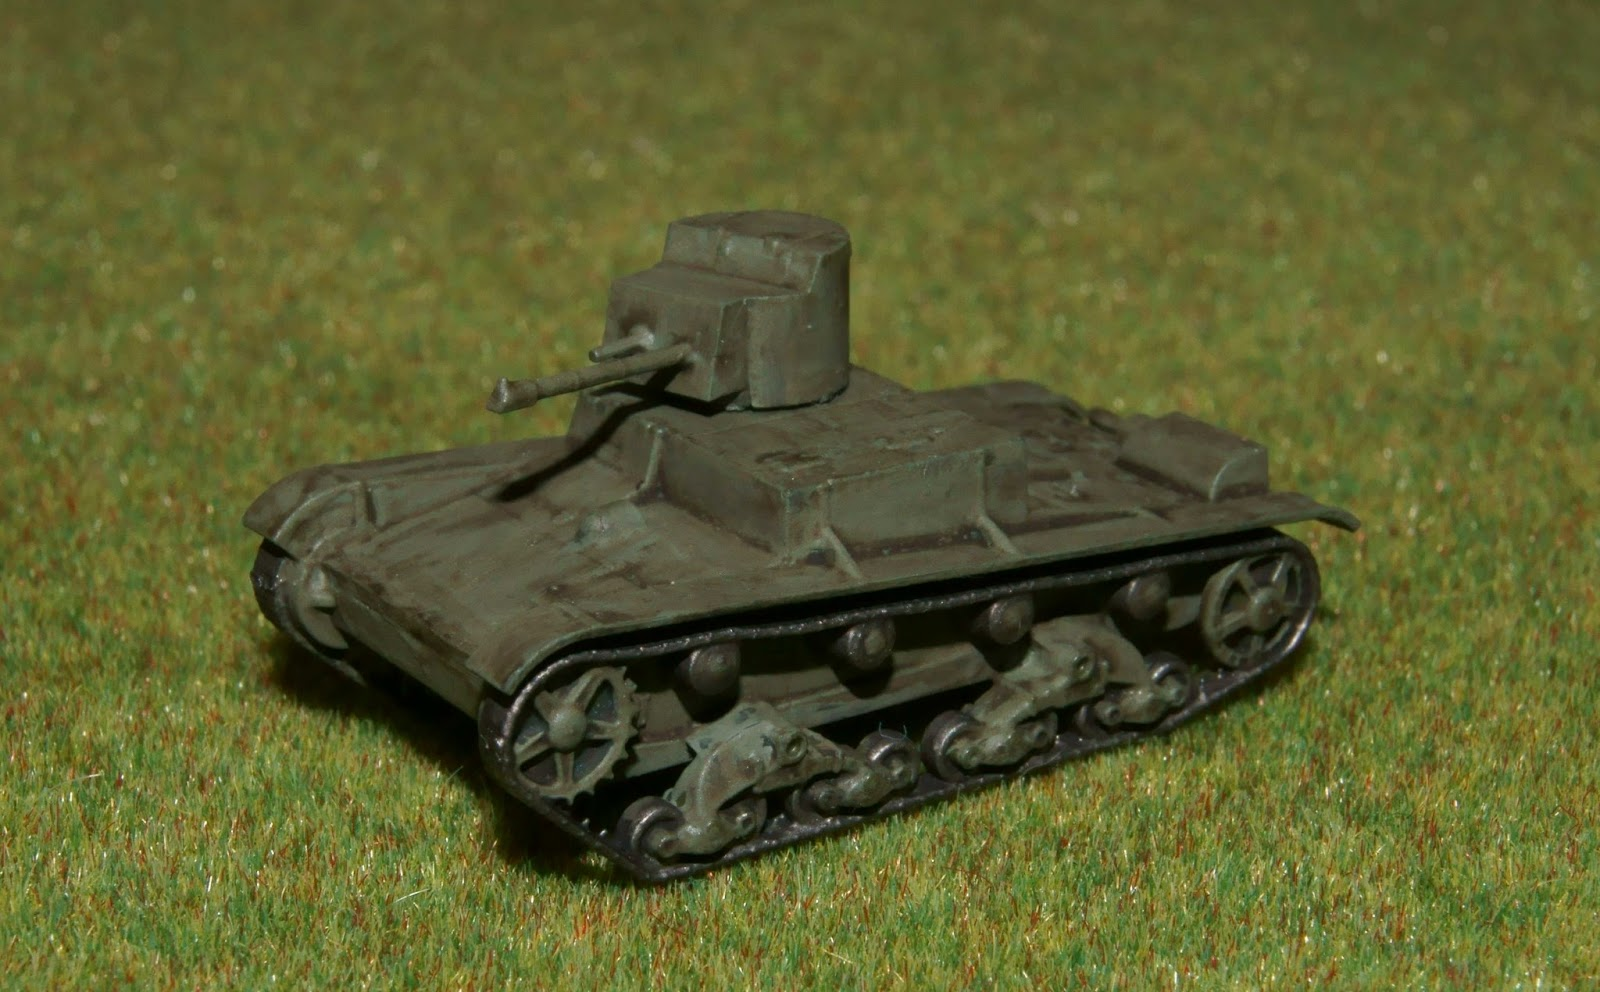 Keith's Tabletop Gaming / Painting Blog: Zvezda 1:100 Scale